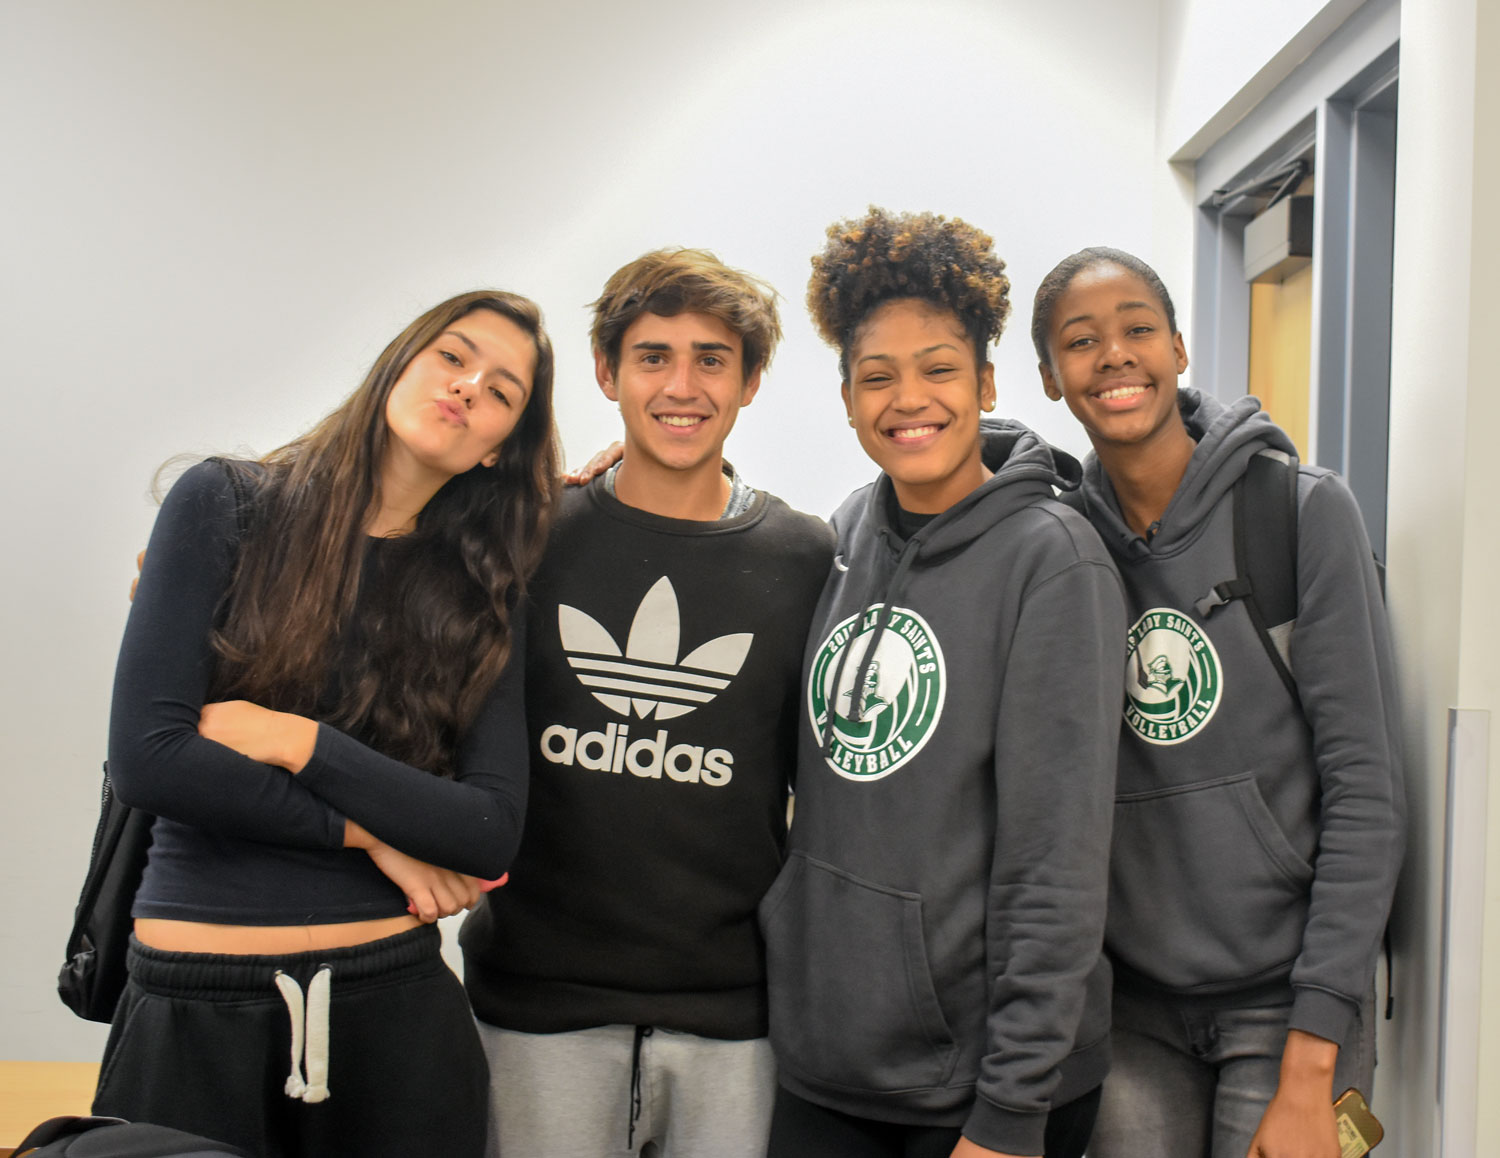 Most athletic teams at SCCC are made up of international students. The volleyball and tennis teams are made up of more than 80 percent students from other countries.  Livia De Pra, volleyball player from the Dominican Republic, Juan Gonzales, tennis player from Argentina, Yanlis Feliz, volleyball player from Dominican Republic, and Mesalina Severino, volleyball player from Dominican Republic, are all new to Liberal.